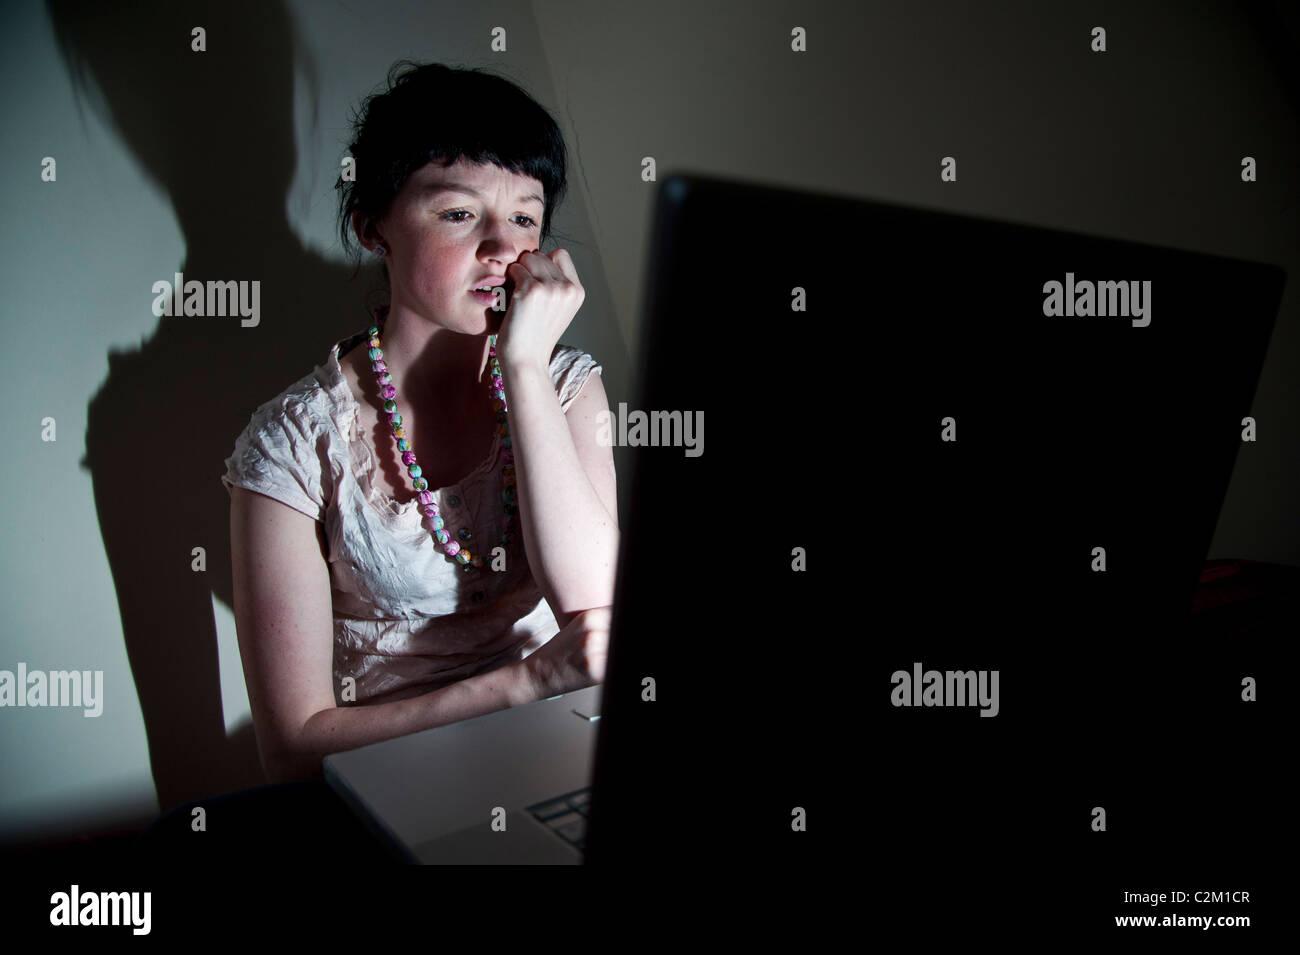 A young woman UK university student working on her laptop computer in bedroom at home, worried about email virus - Stock Image